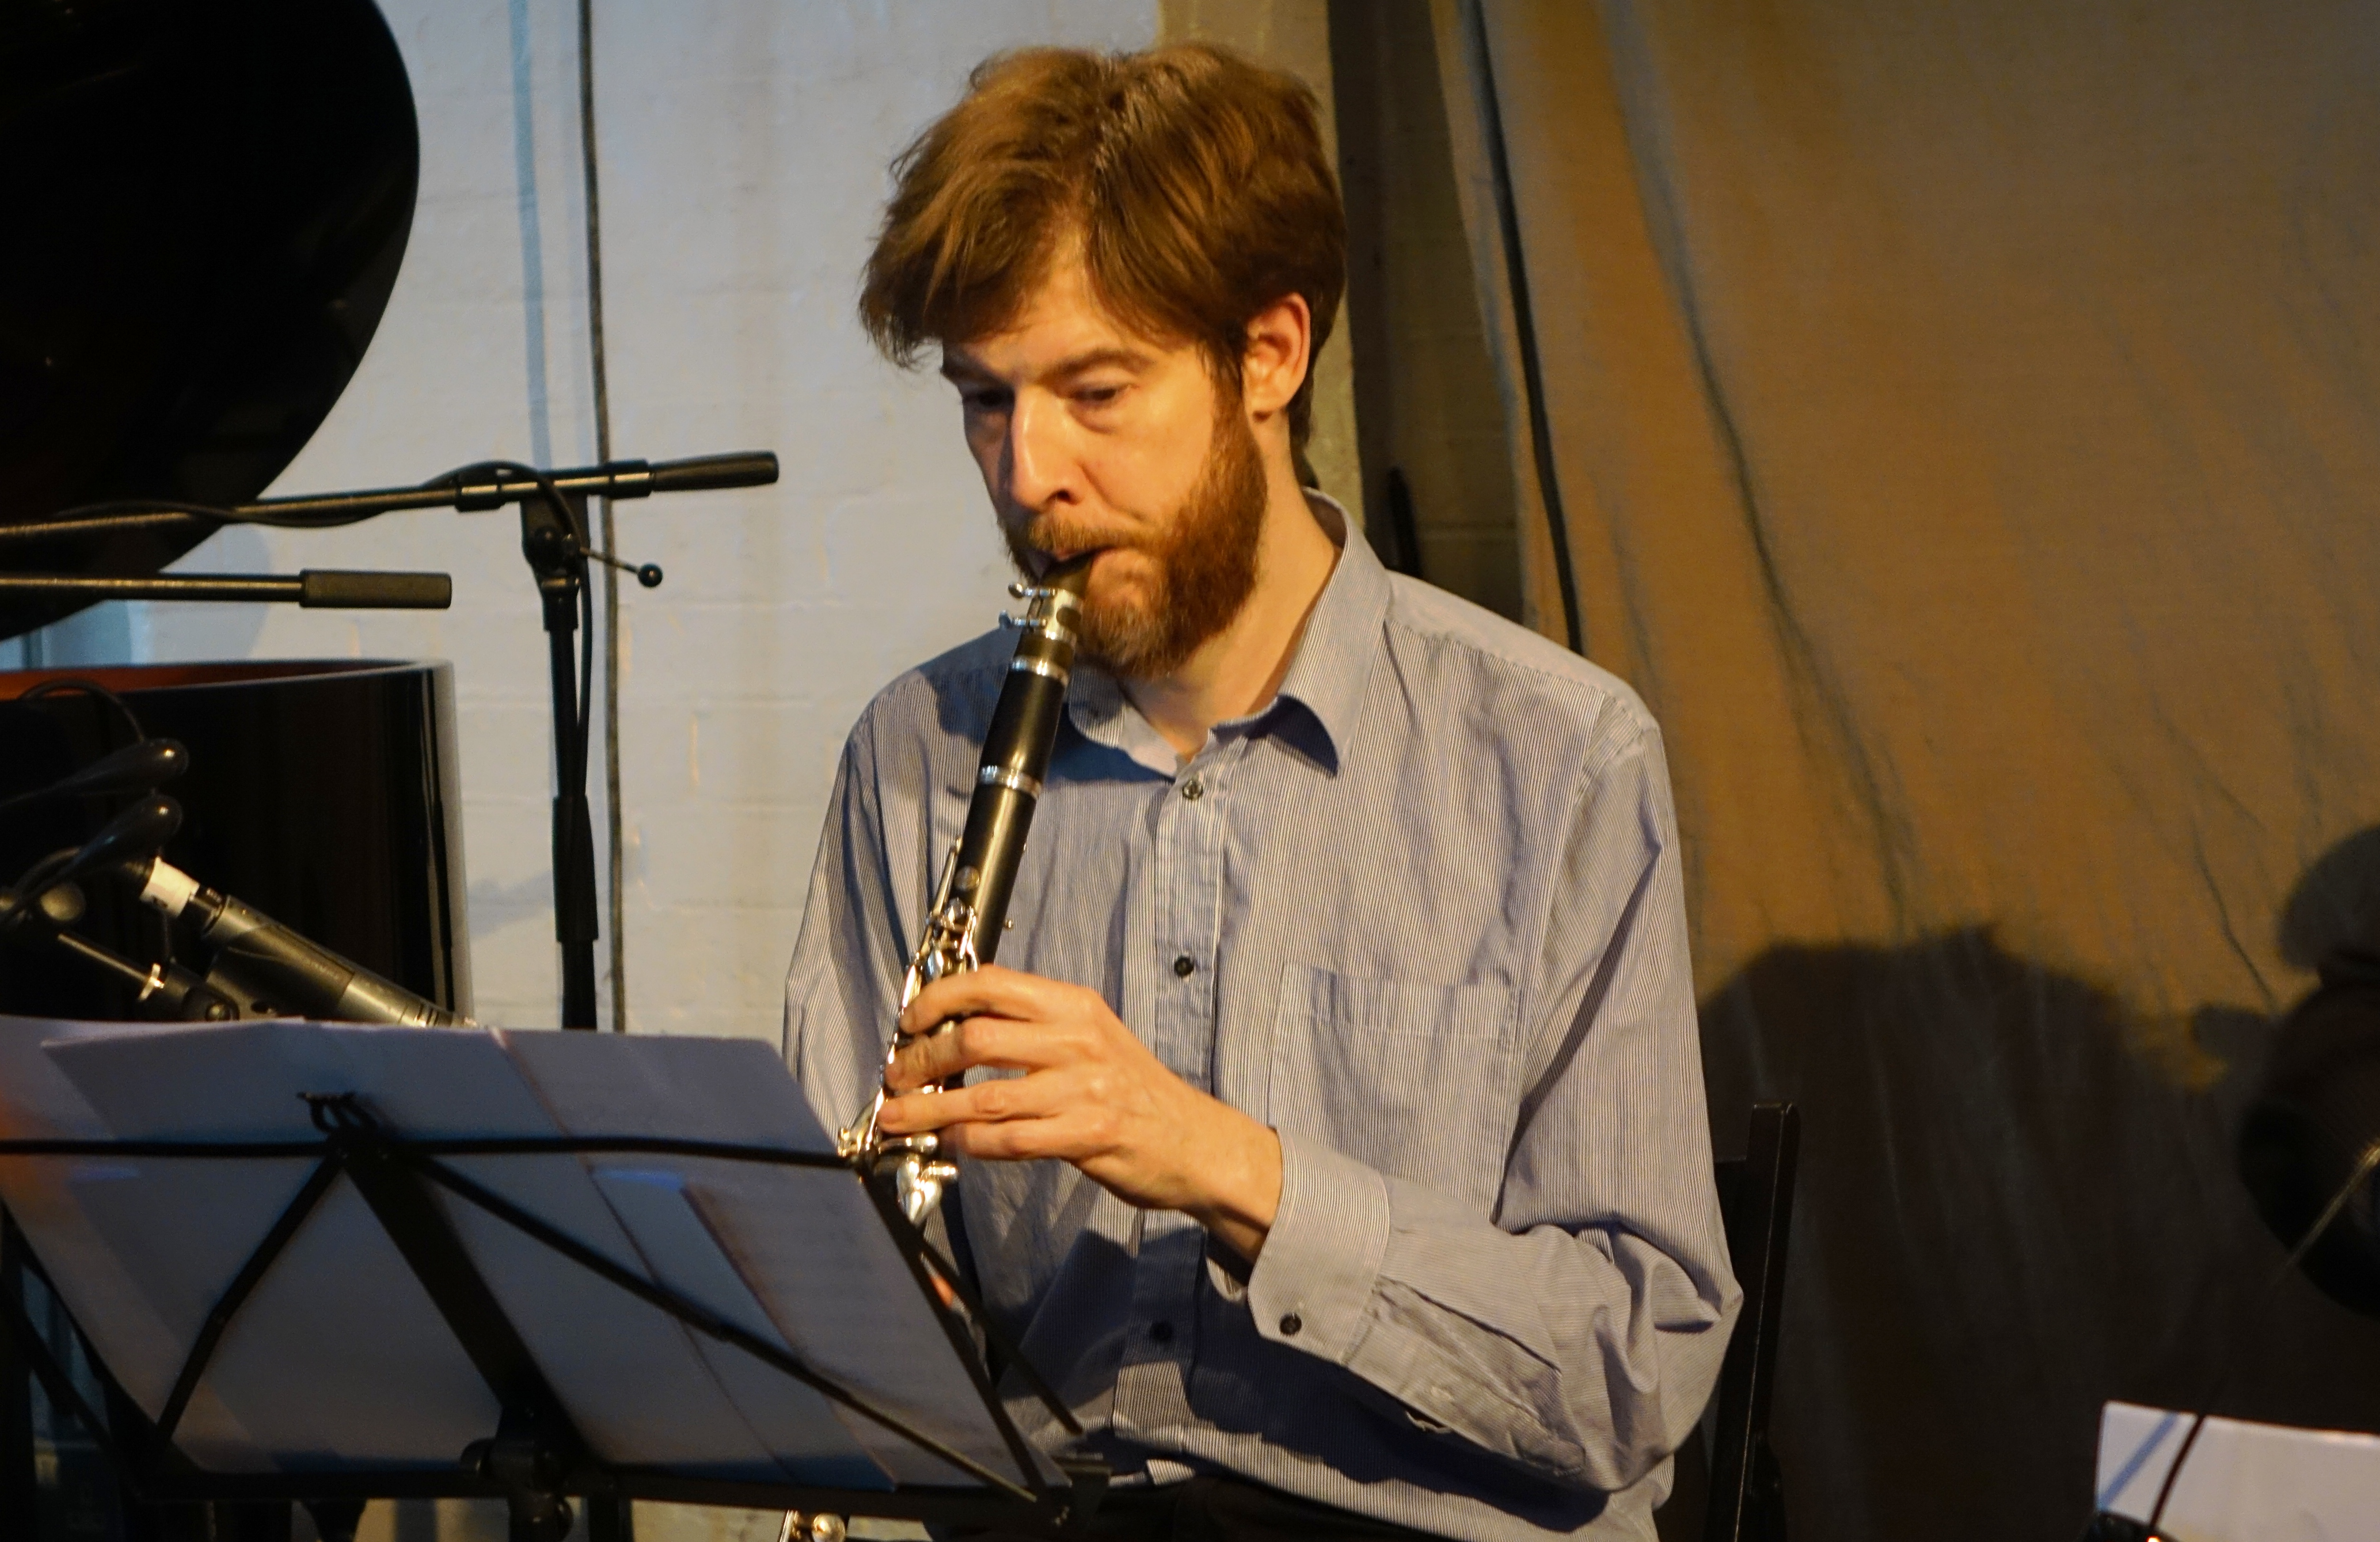 Alex Ward at Cafe Oto, London in April 2018